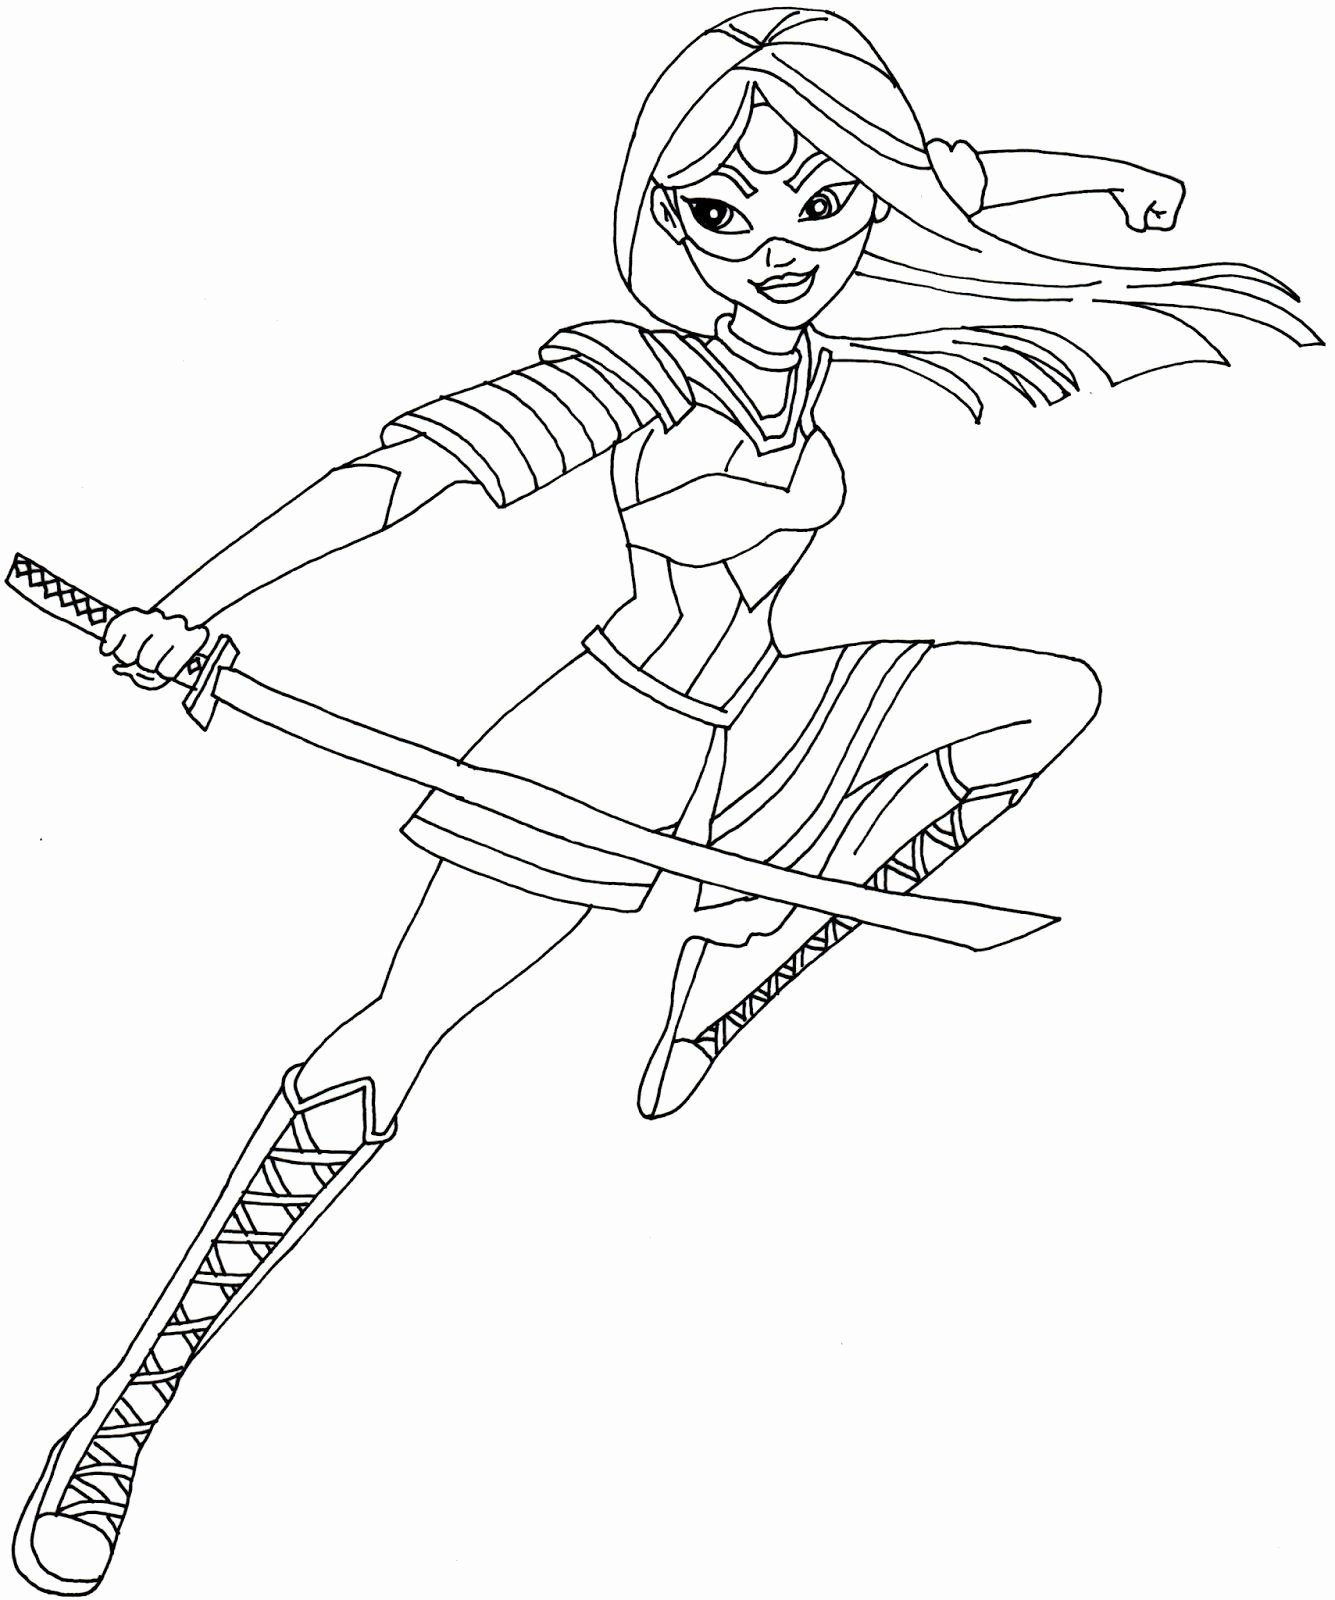 Free Superhero Coloring Pages Awesome Free Printable Super Hero High Coloring Page for Katana E Of My Favorite Actually I Love All